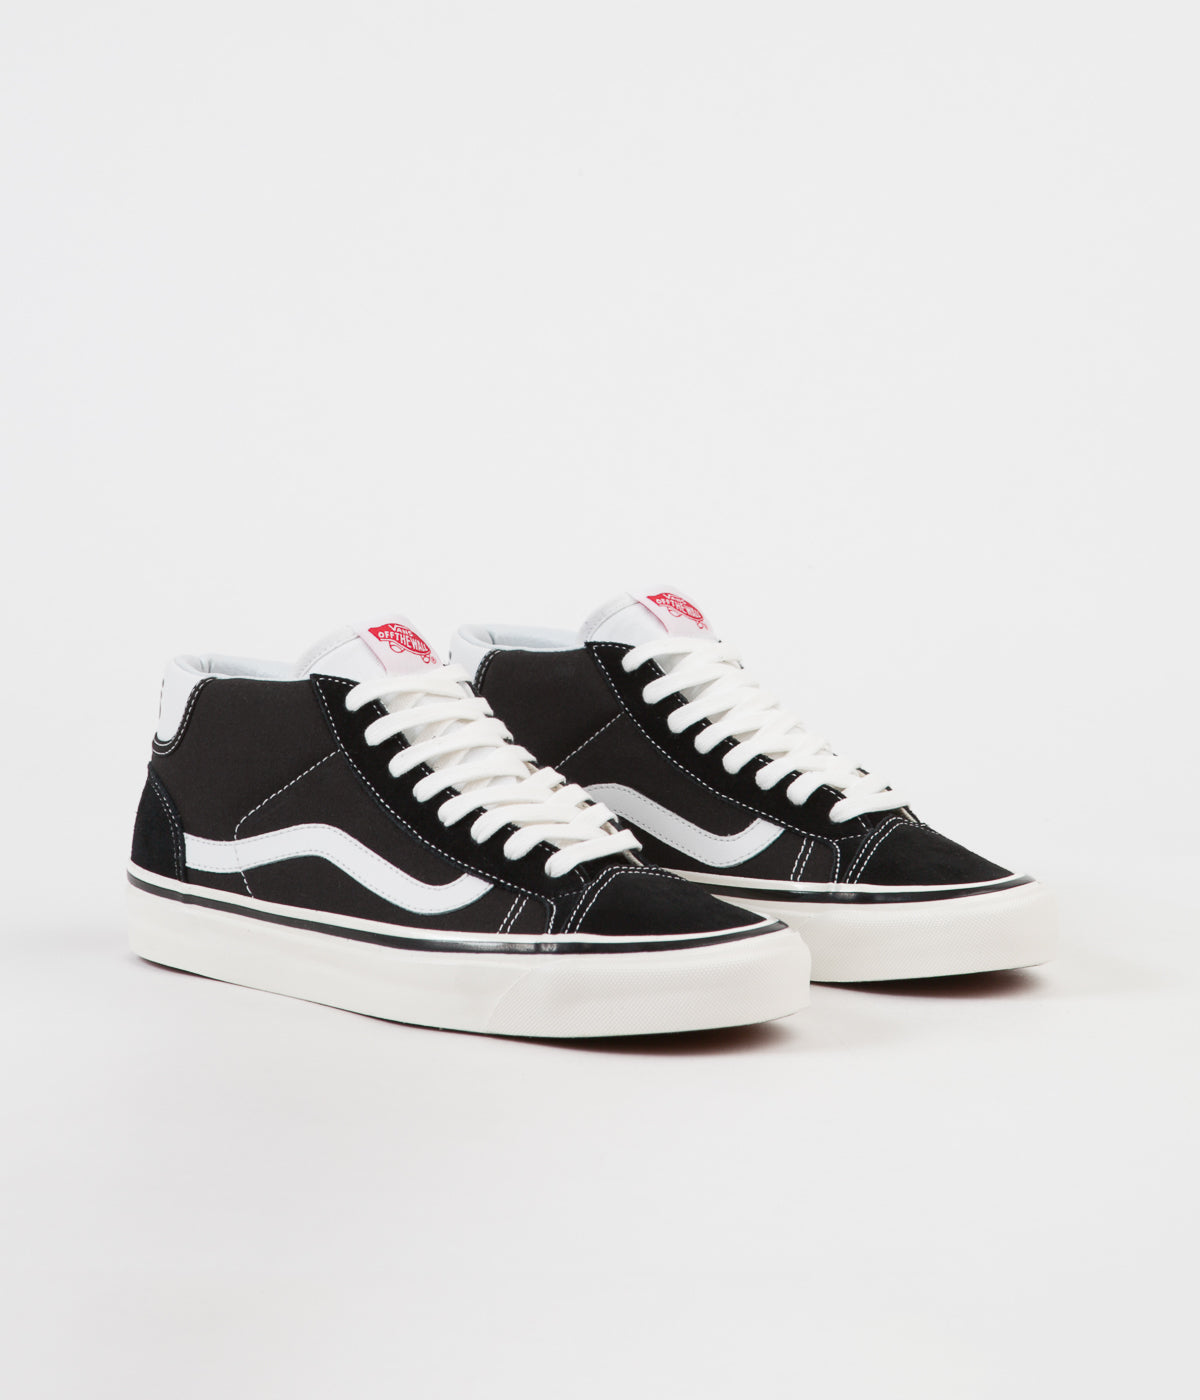 Vans Mid Skool Anaheim Factory 37 DX Black